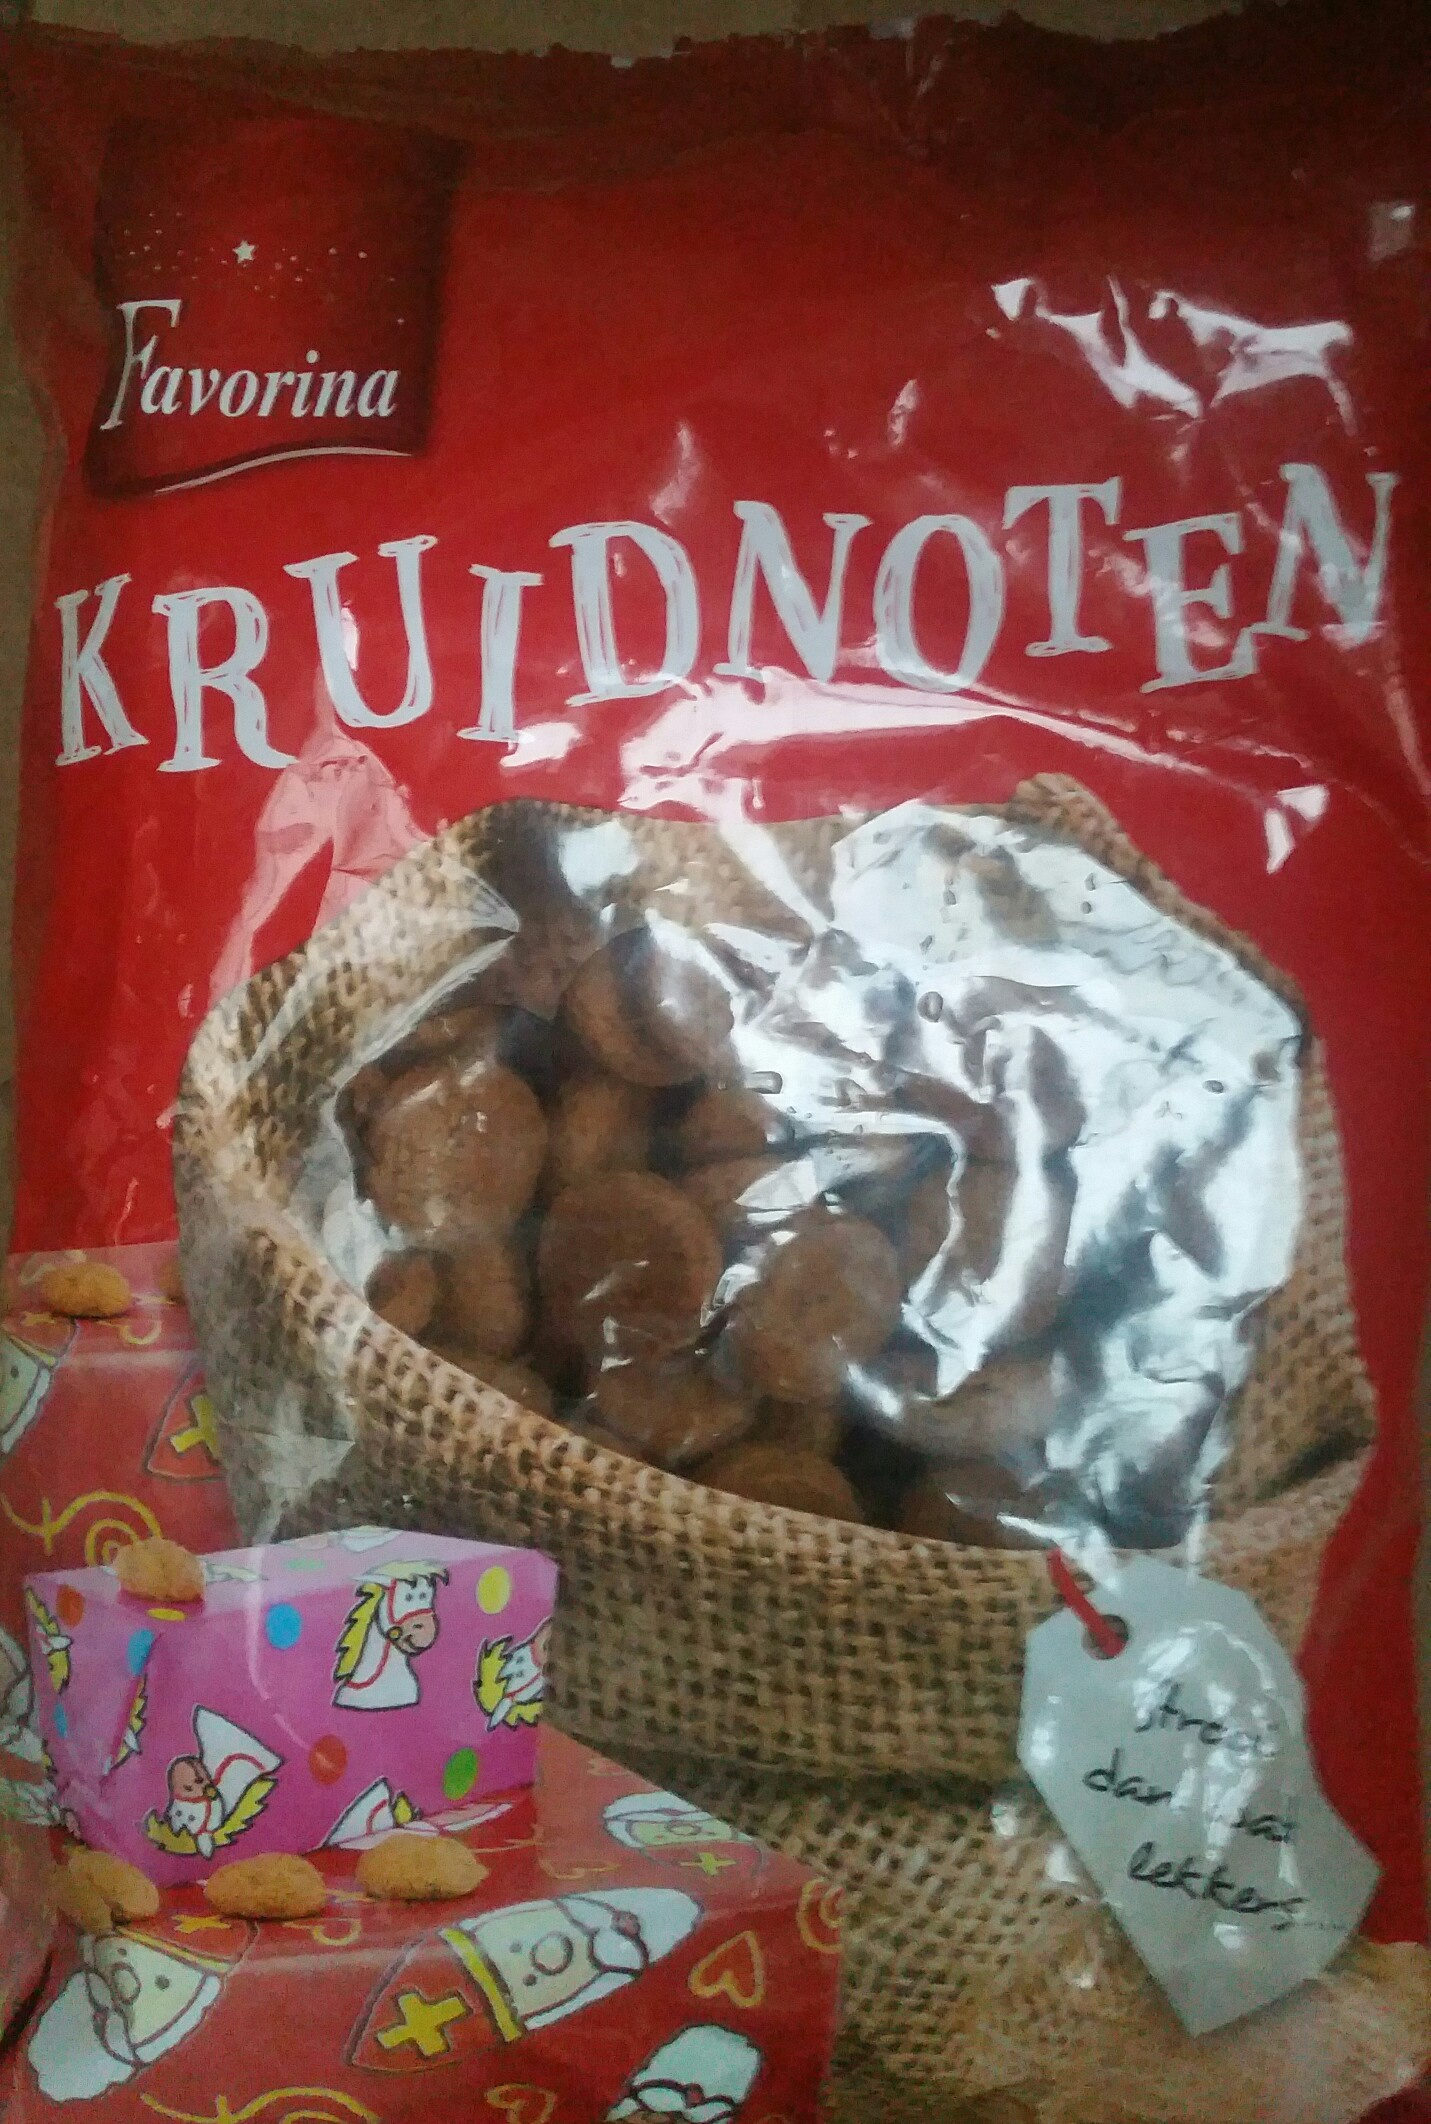 Kruid-noten - Product - fr